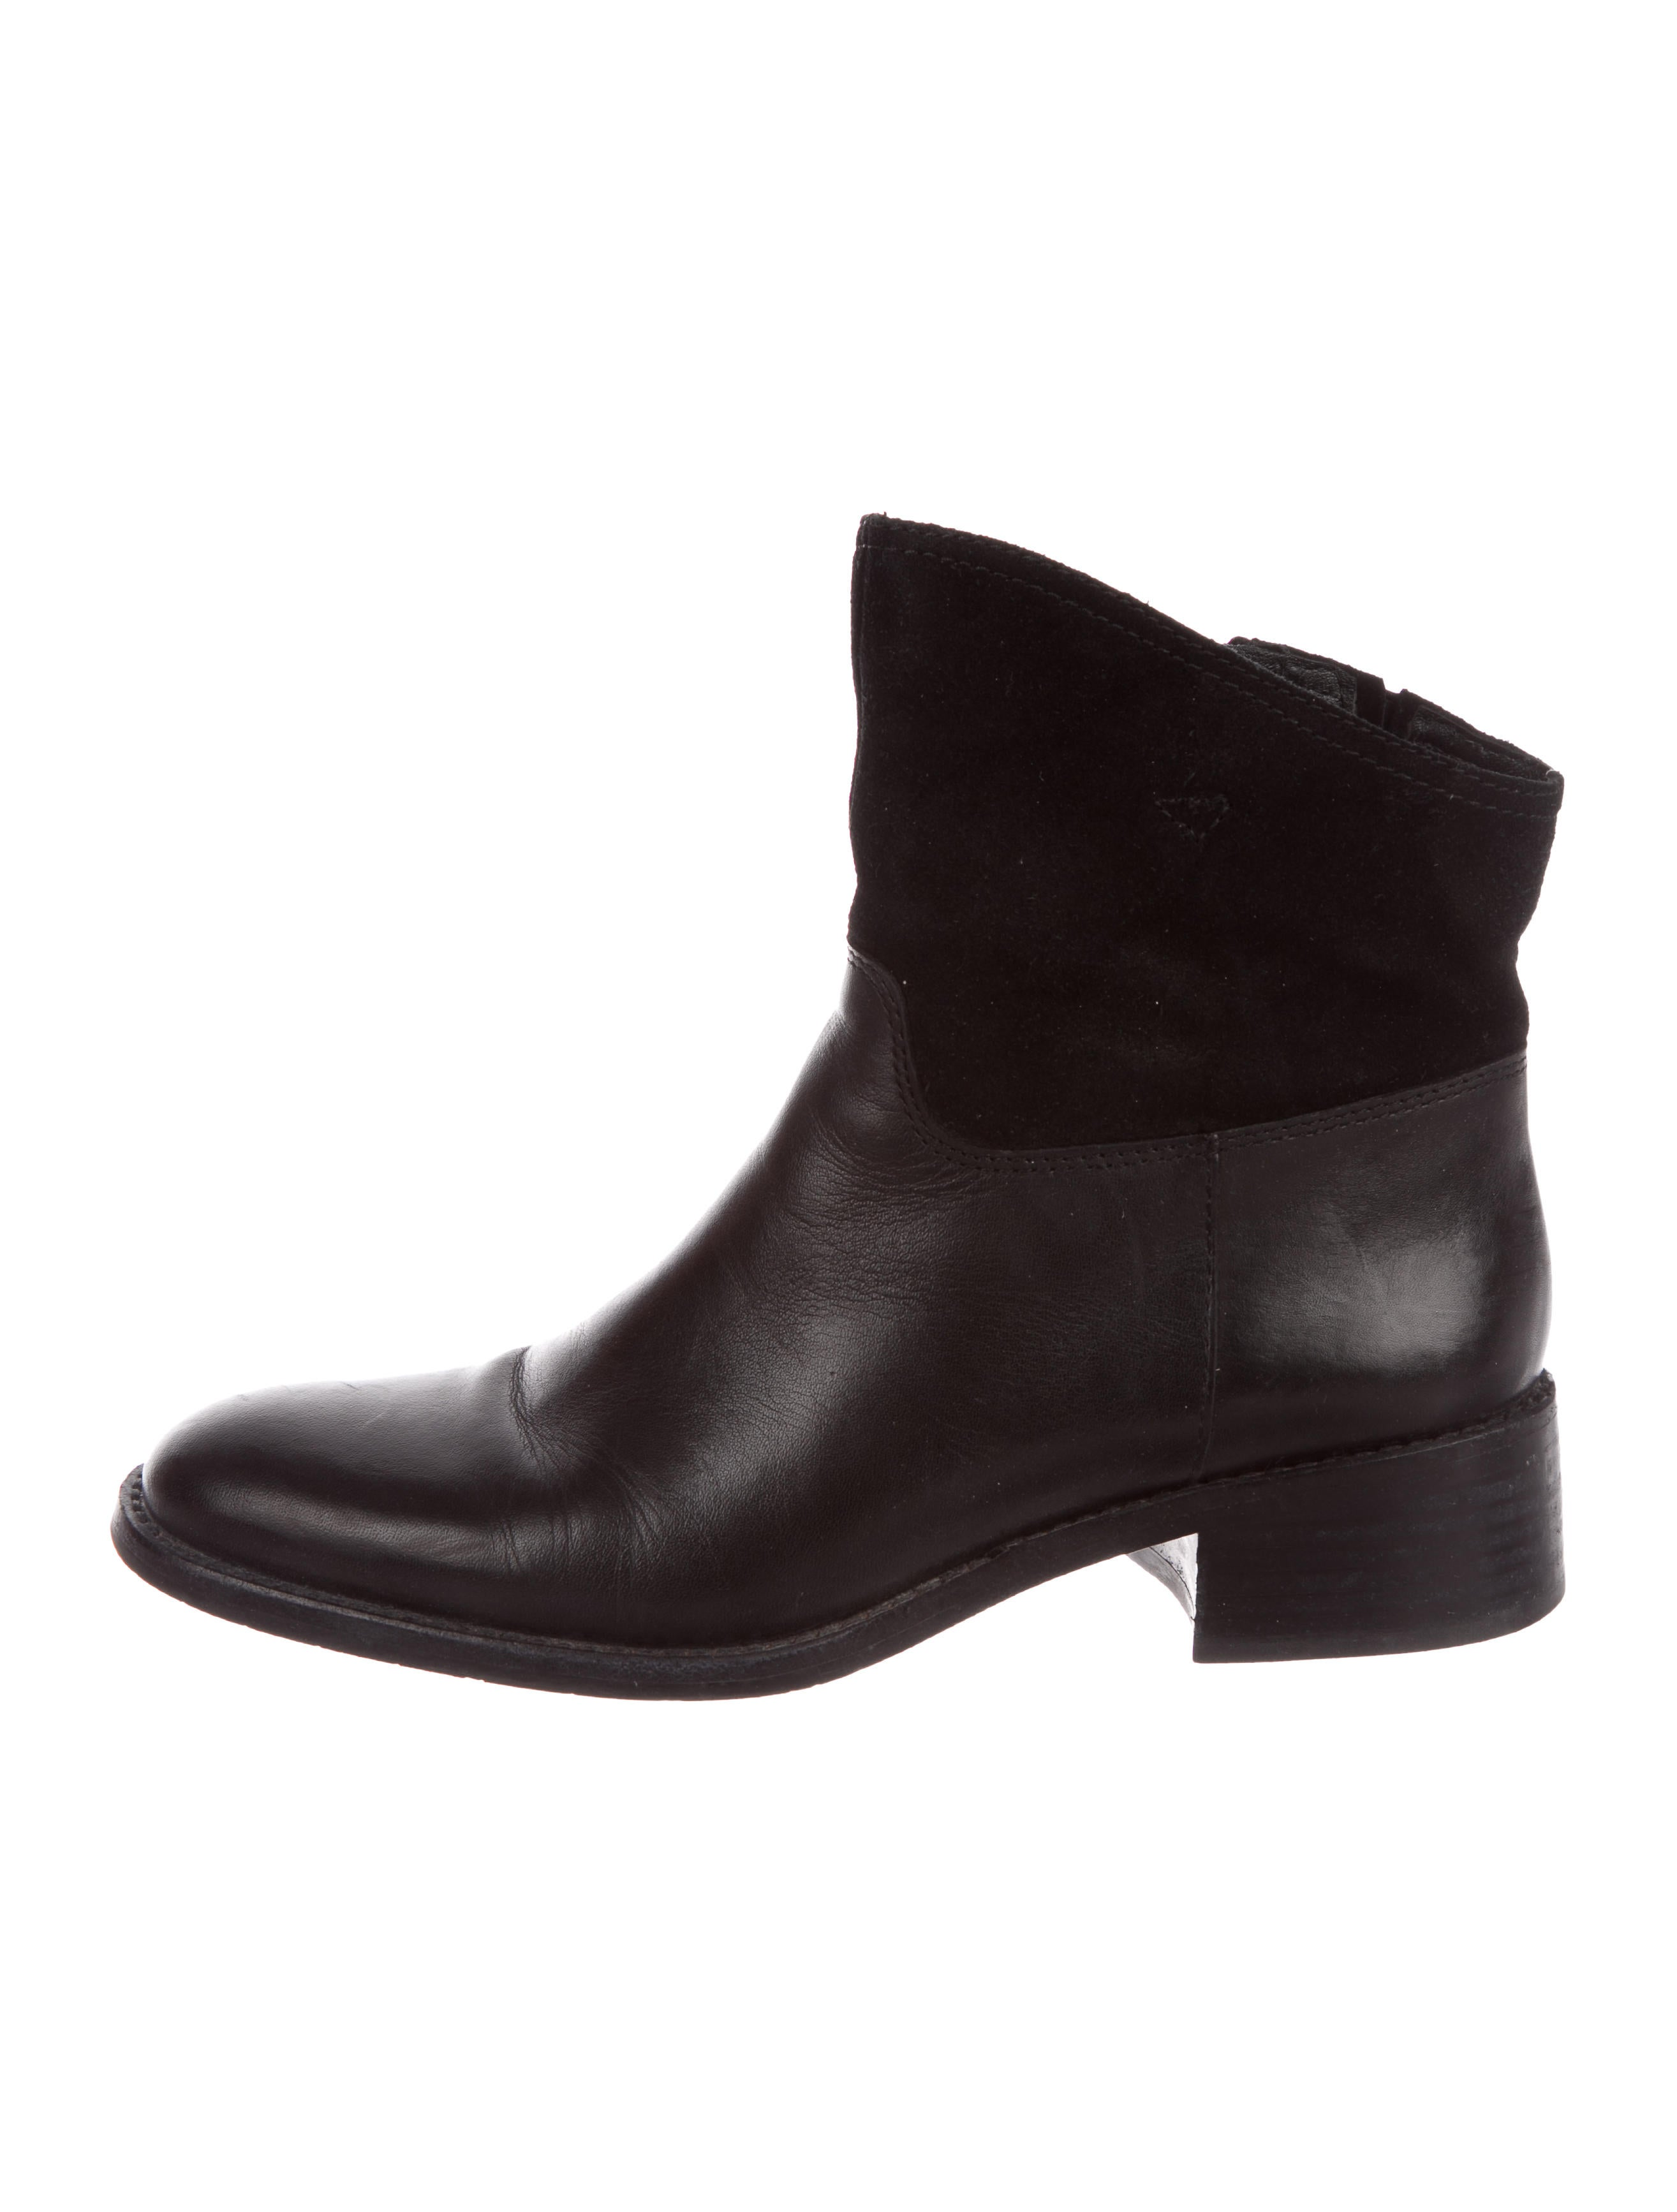 Donald J Pliner Zula Leather Booties largest supplier cheap online mEvwa3pm8s